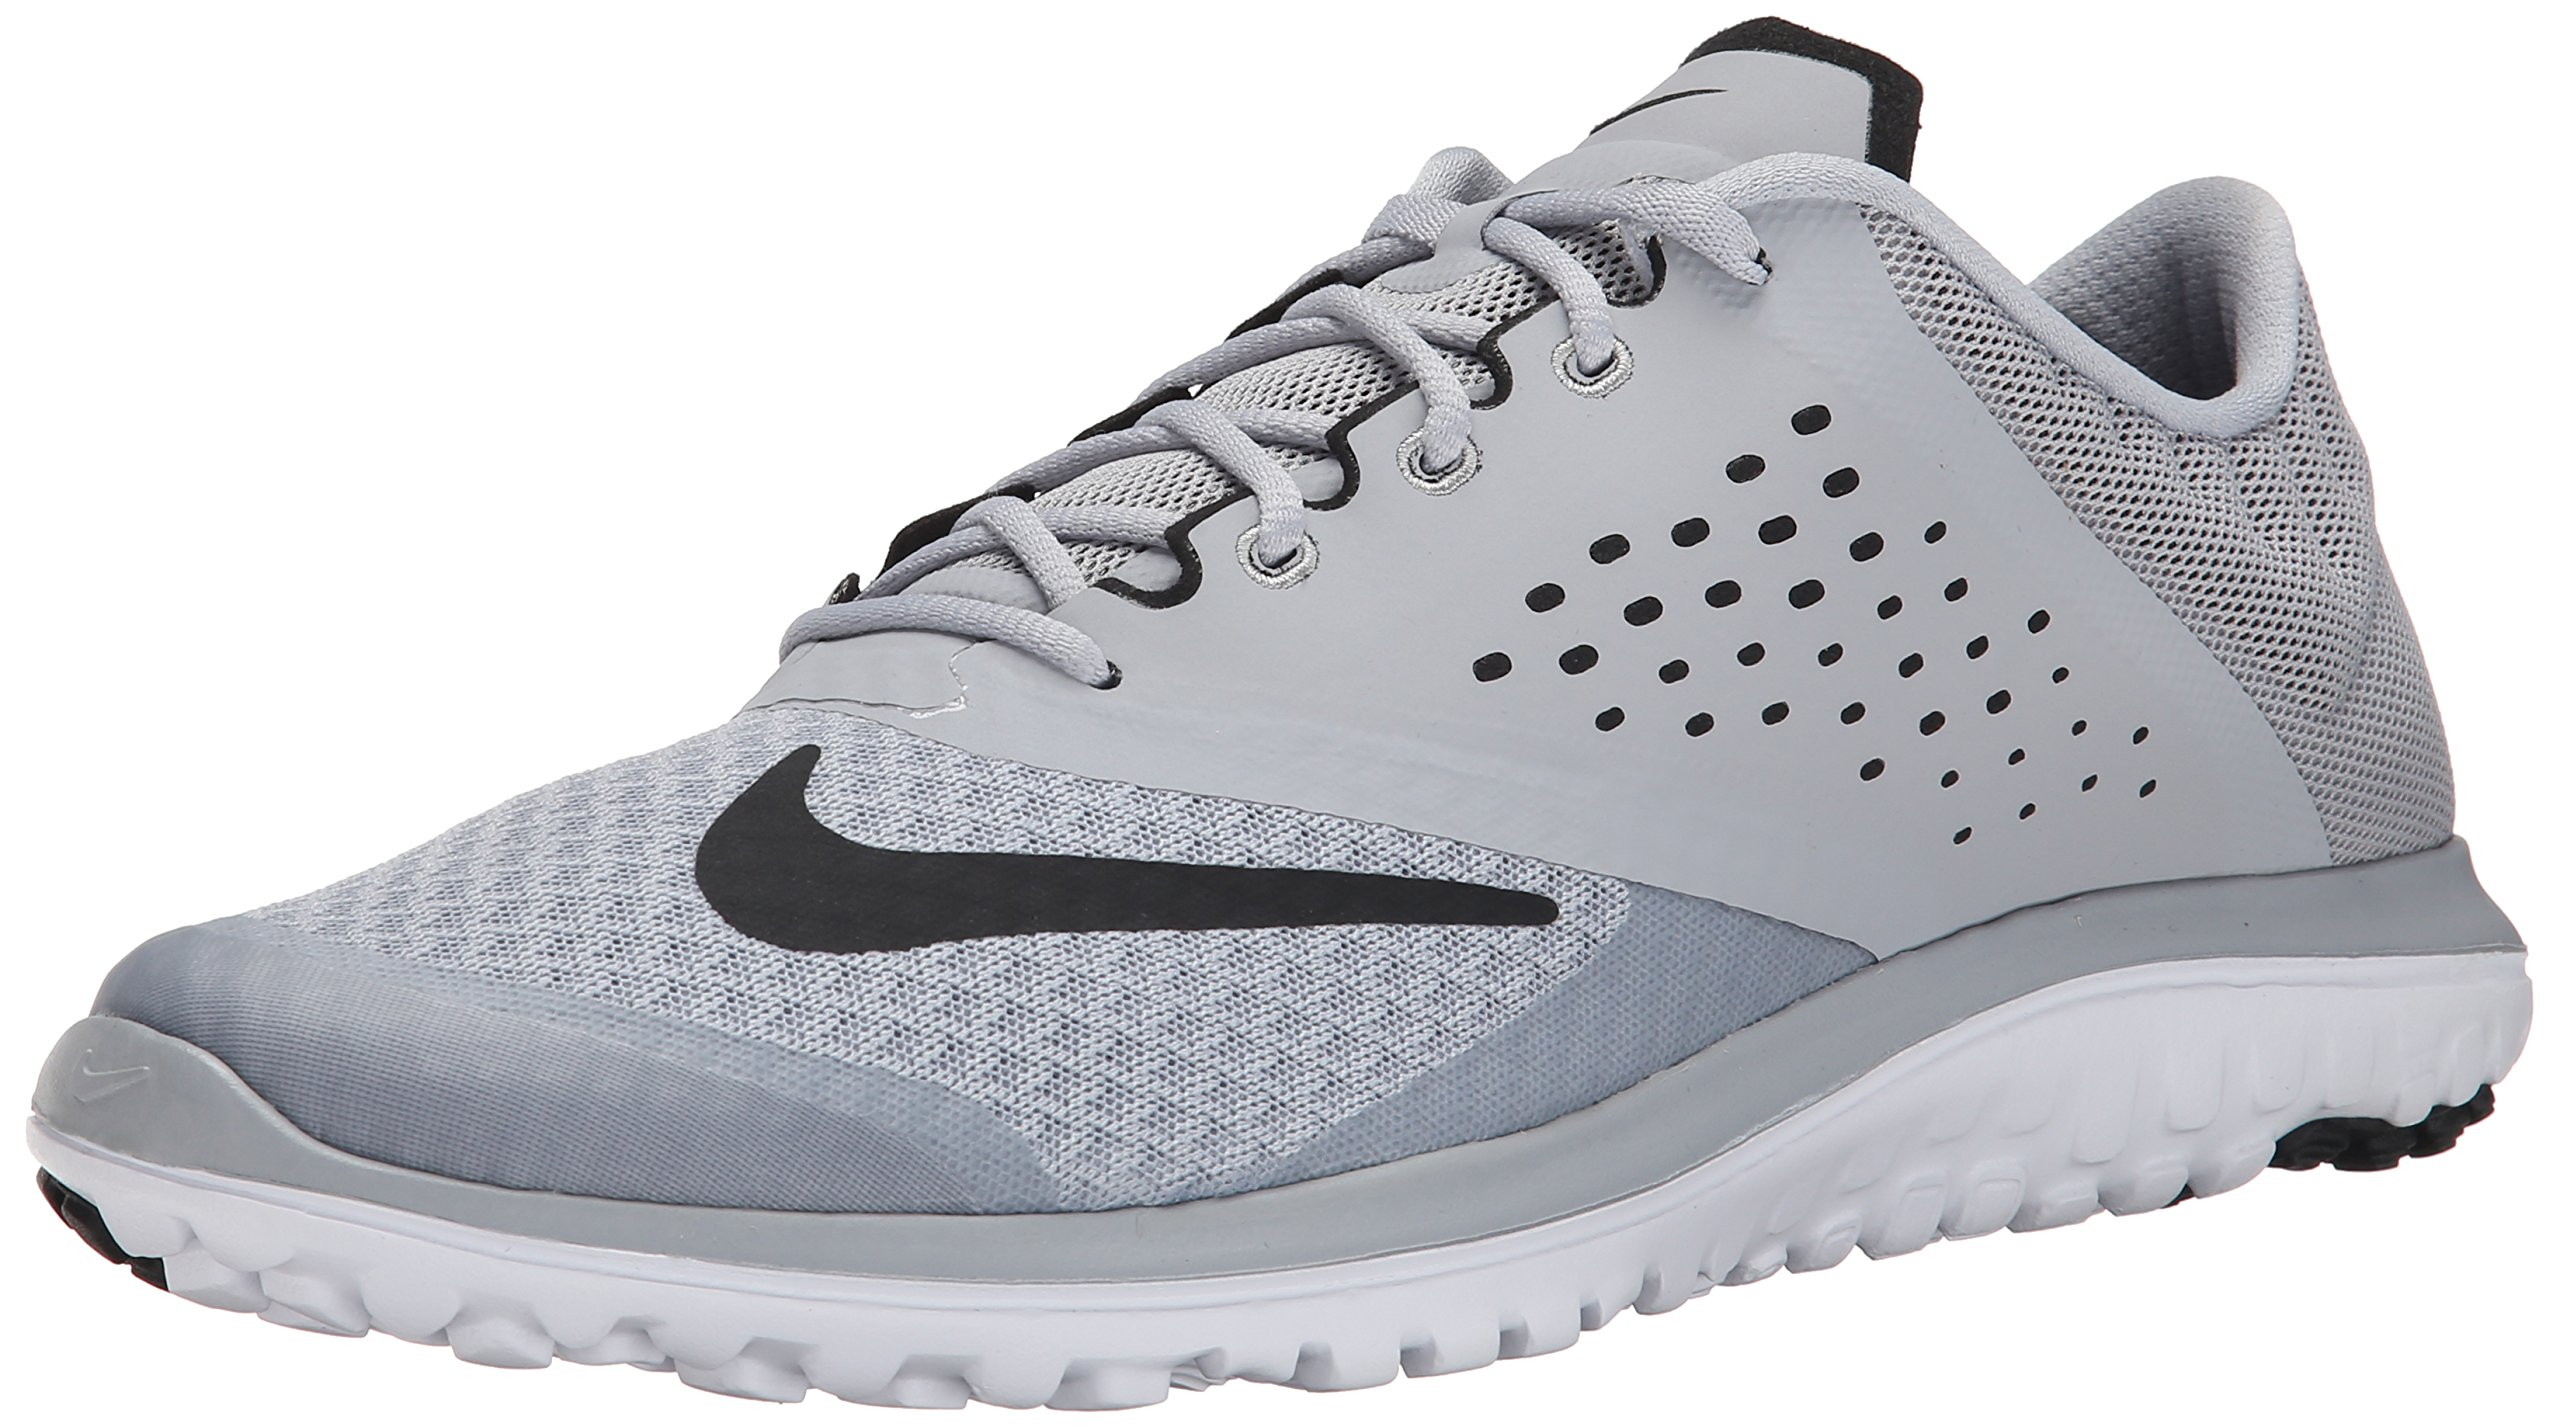 top design fd955 c6ca1 Galleon - Nike Men's FS Lite Run 2 Shoe, Wolf Grey/Black ...